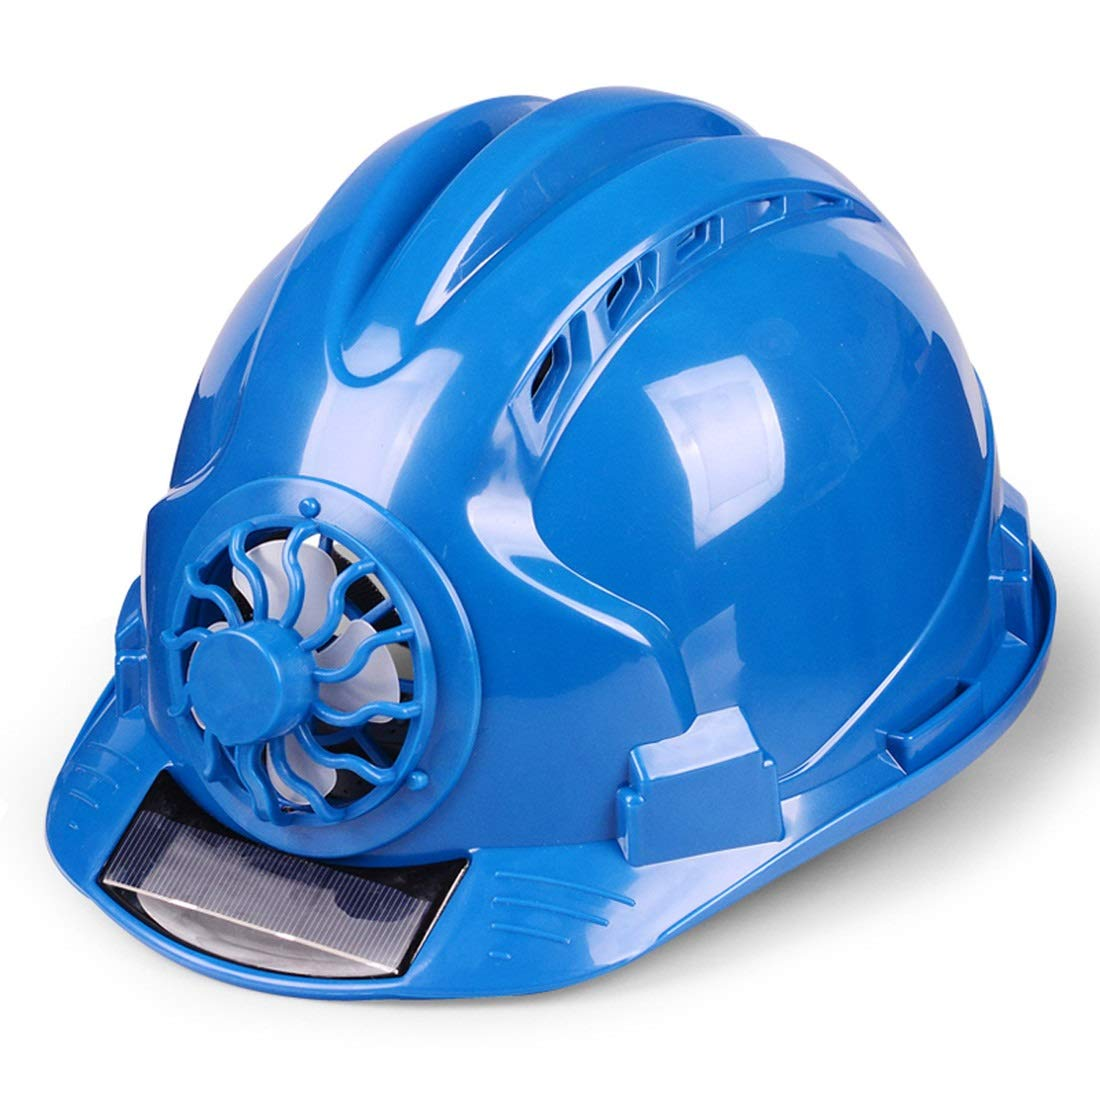 Lilade Adjustable Construction Helmet with 'Solar Fan' Vents-Meets ANSI Standards-Personal Protective Equipment, for Construction,Home Improvement and DIY Projects/PP Material ( Color : Blue ) by Tools-Hard Hats